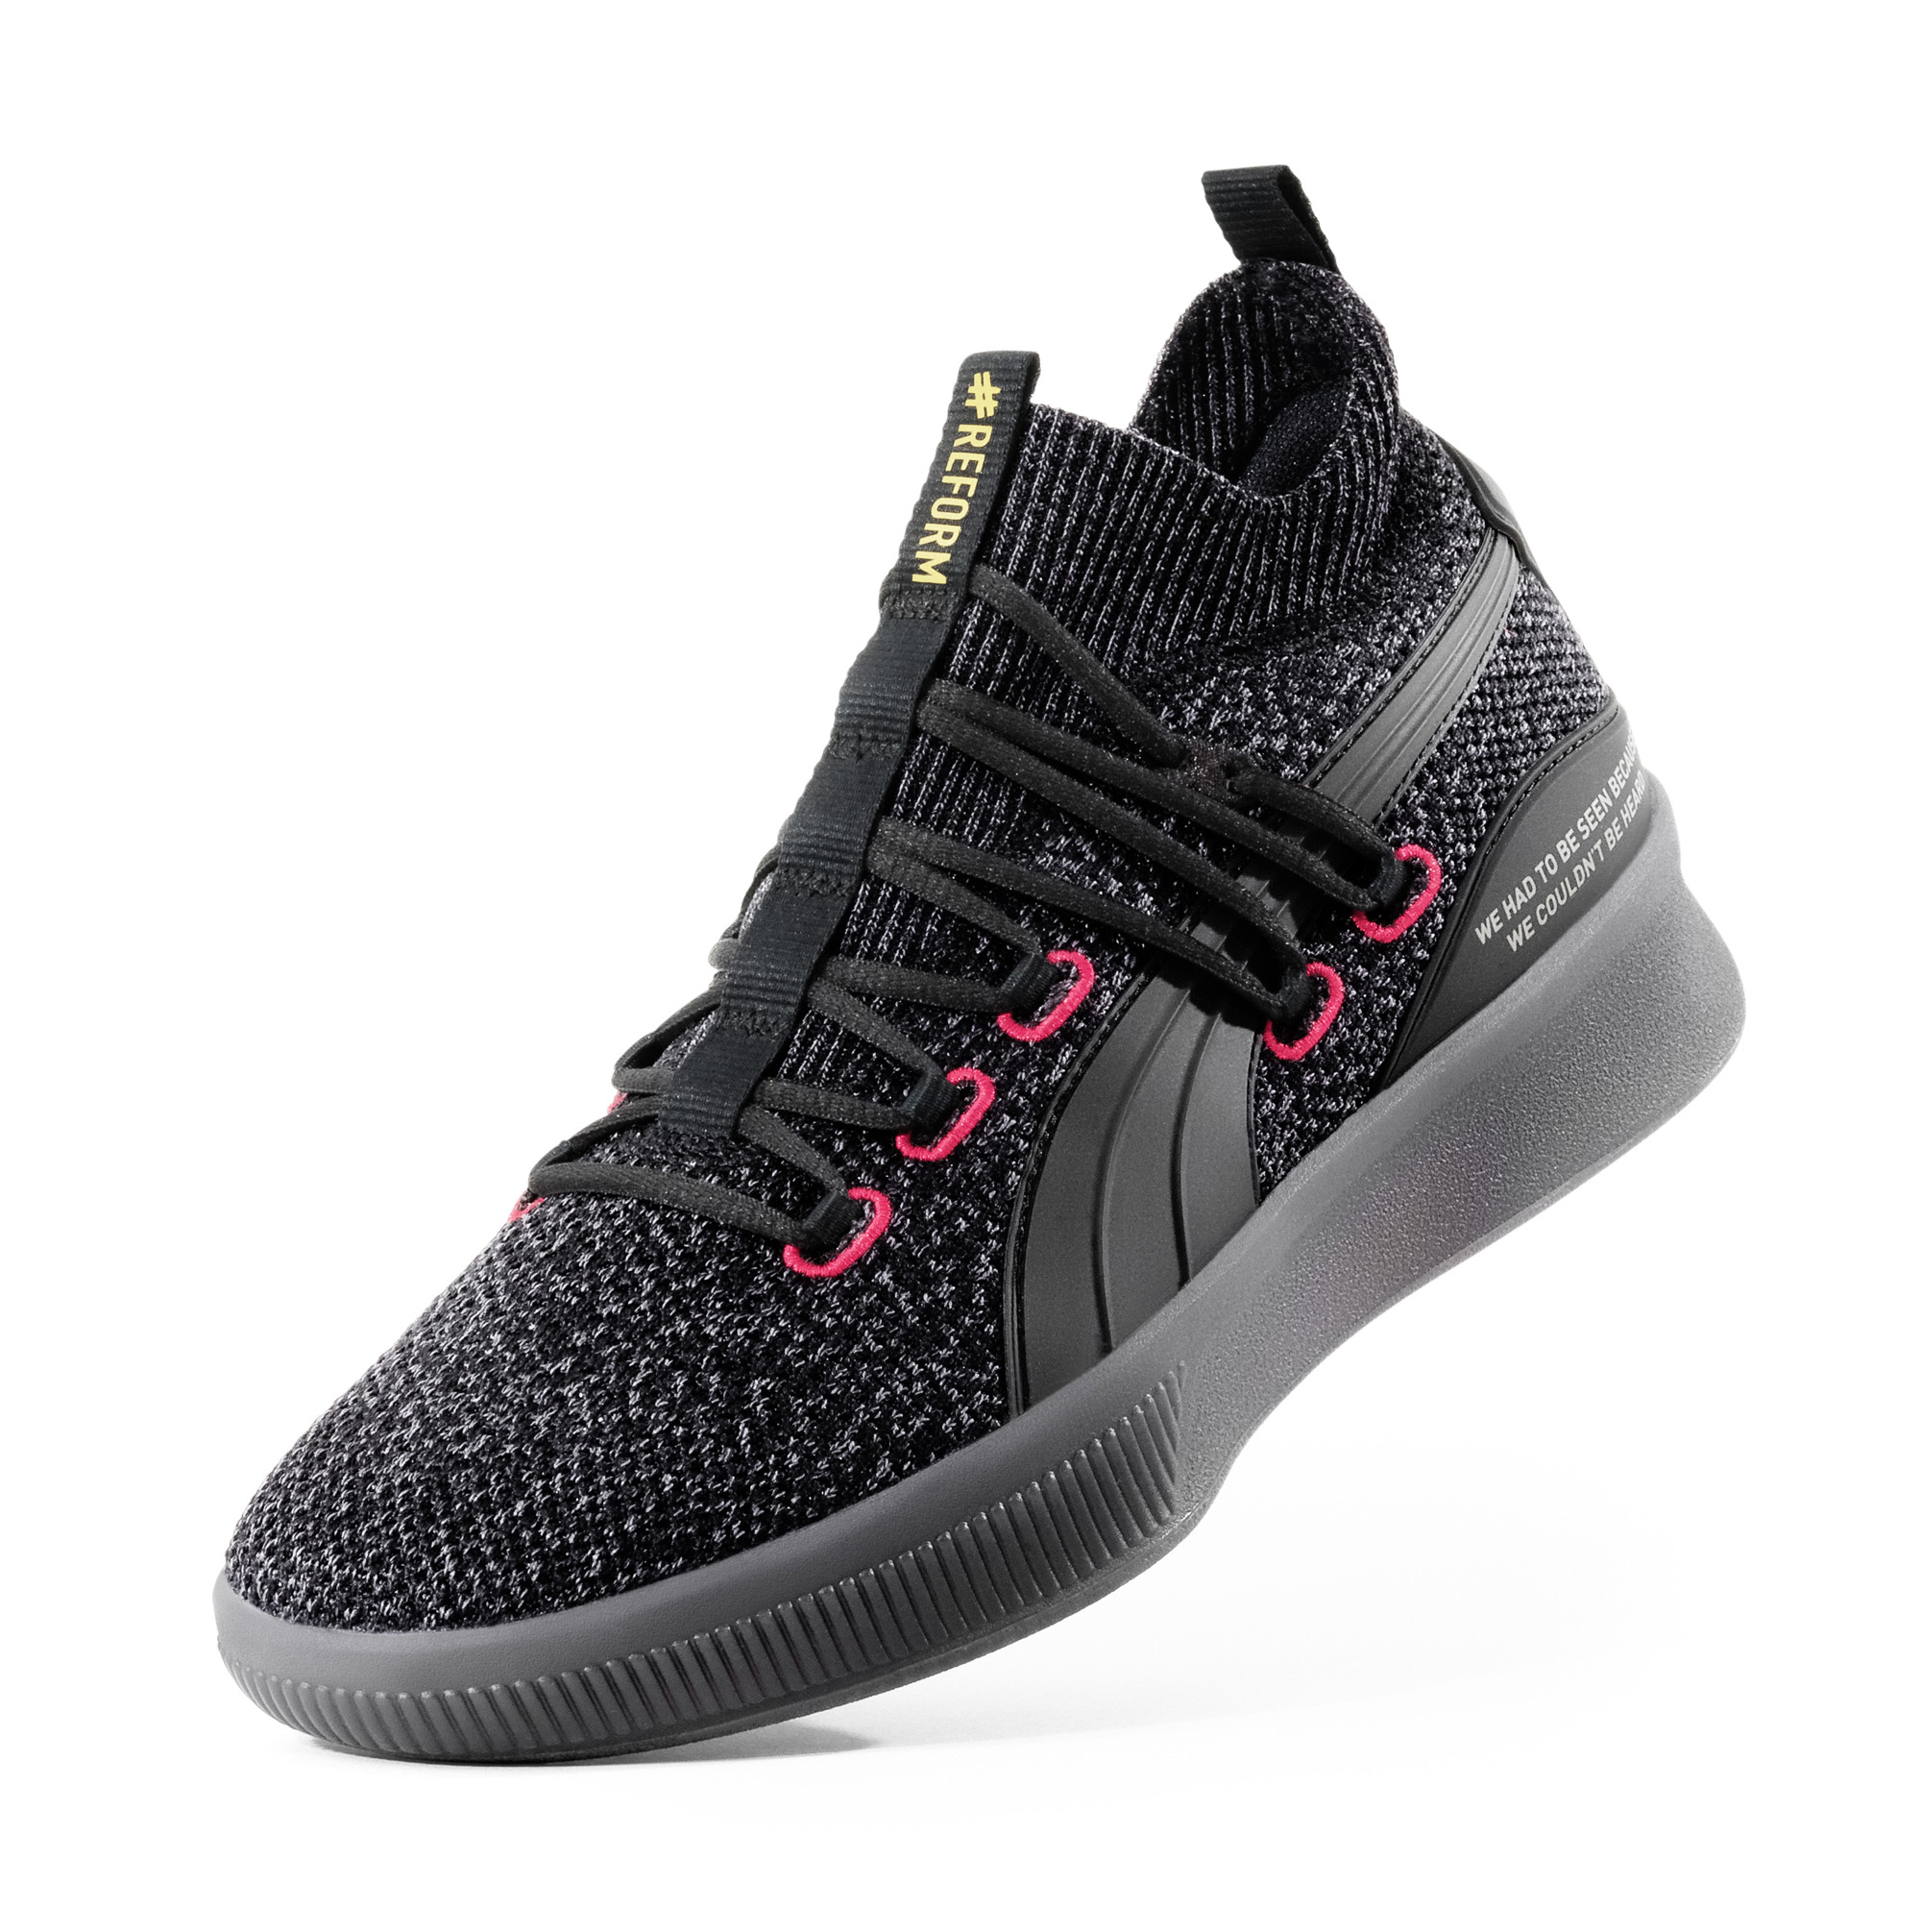 PUMA-Clyde-Court-REFORM-1 - WearTesters